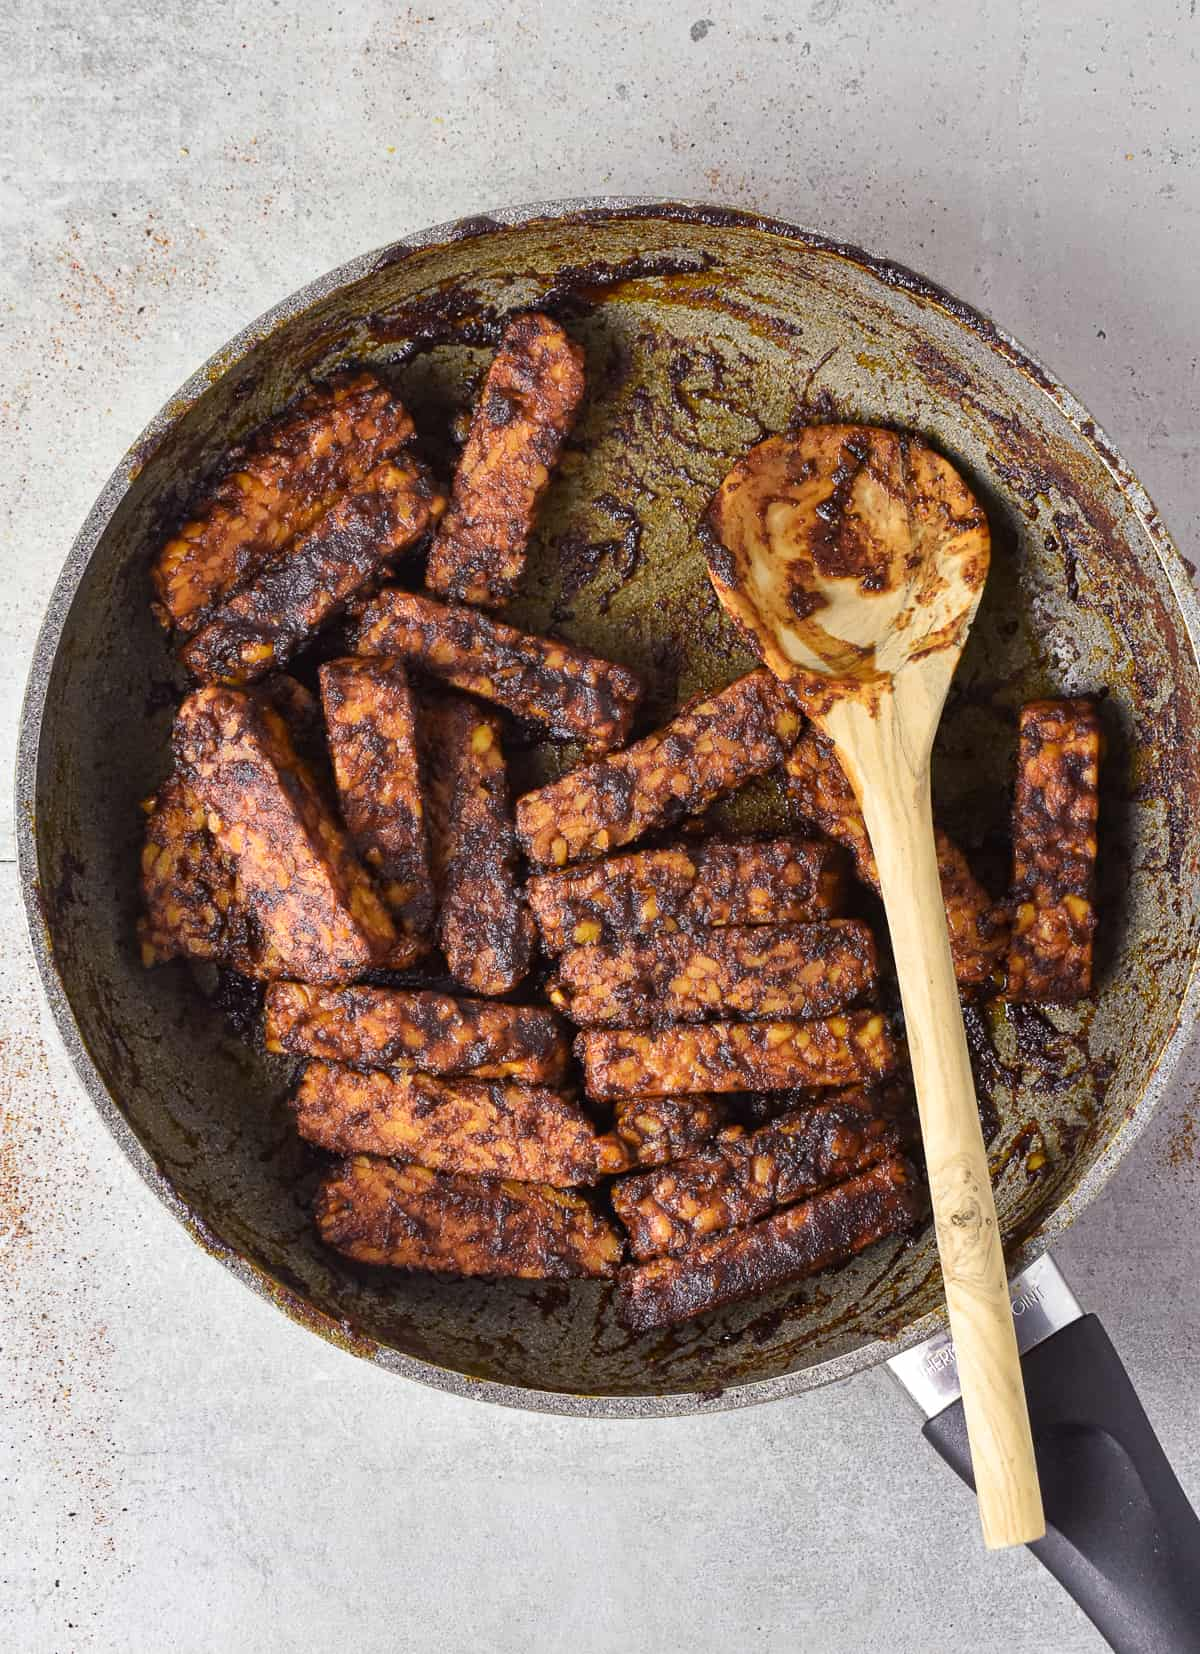 tempeh pieces in skillet and cooked with marinade.